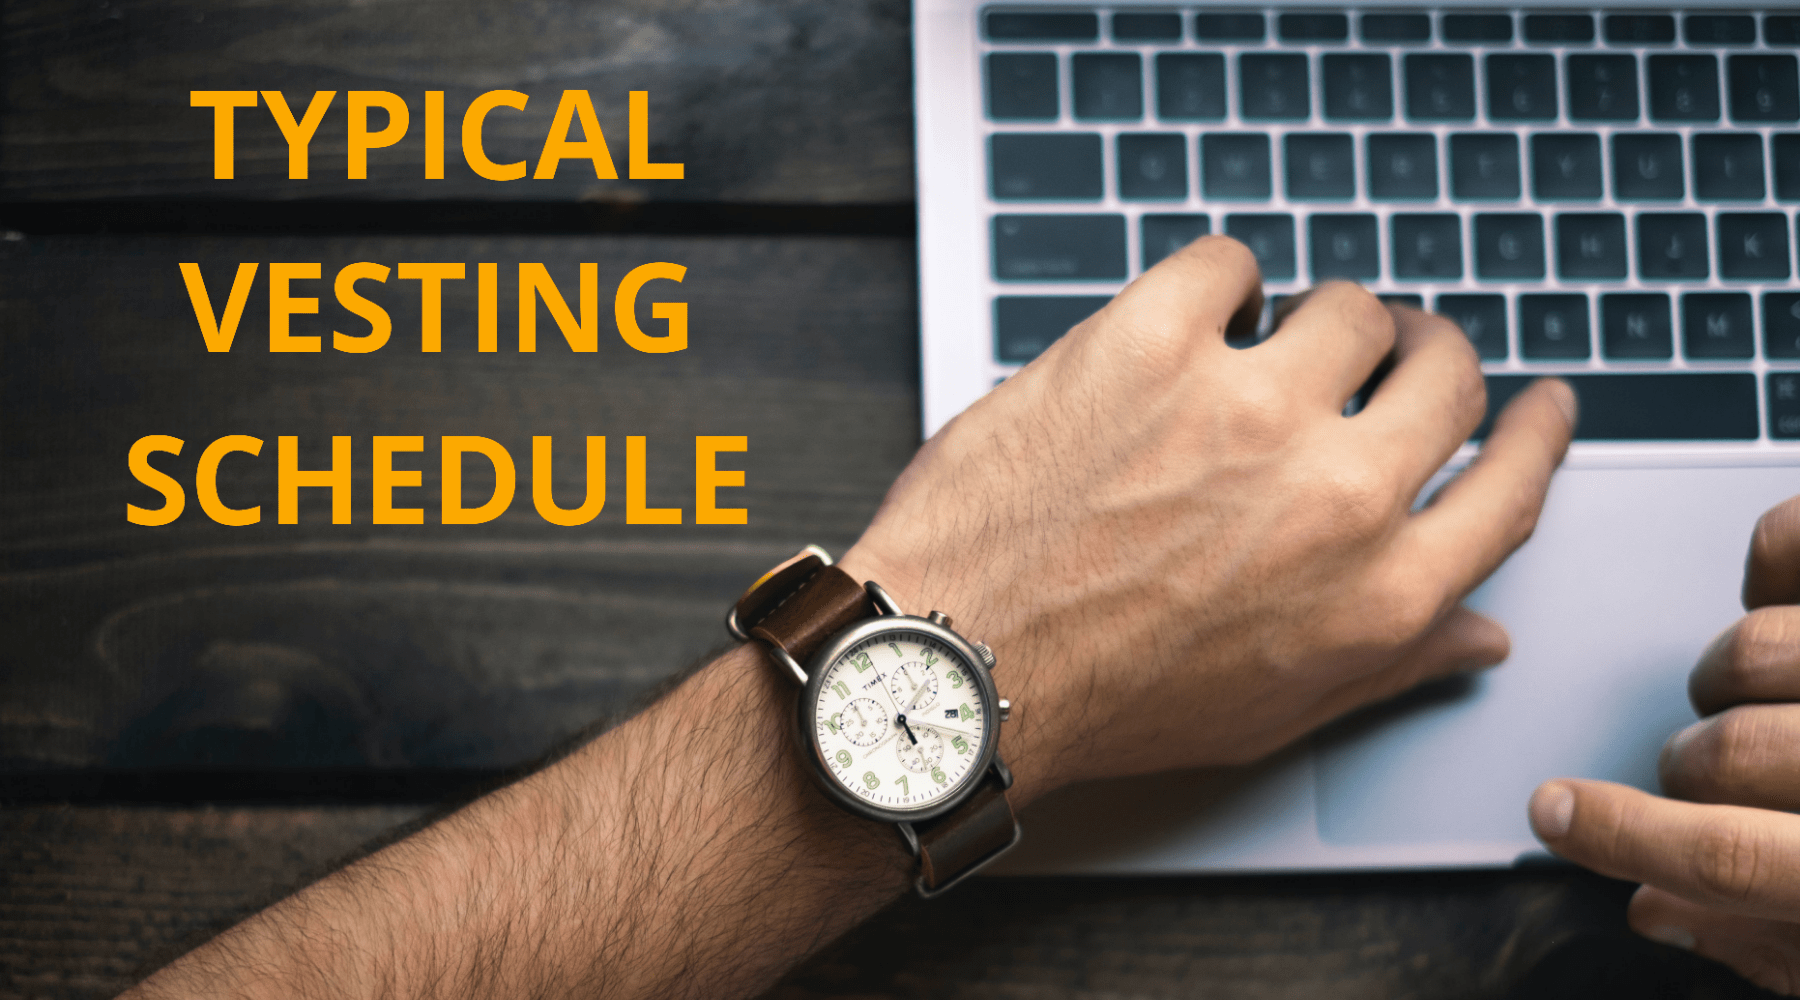 How Does a Typical Vesting Schedule Function and What Are Its Advantages